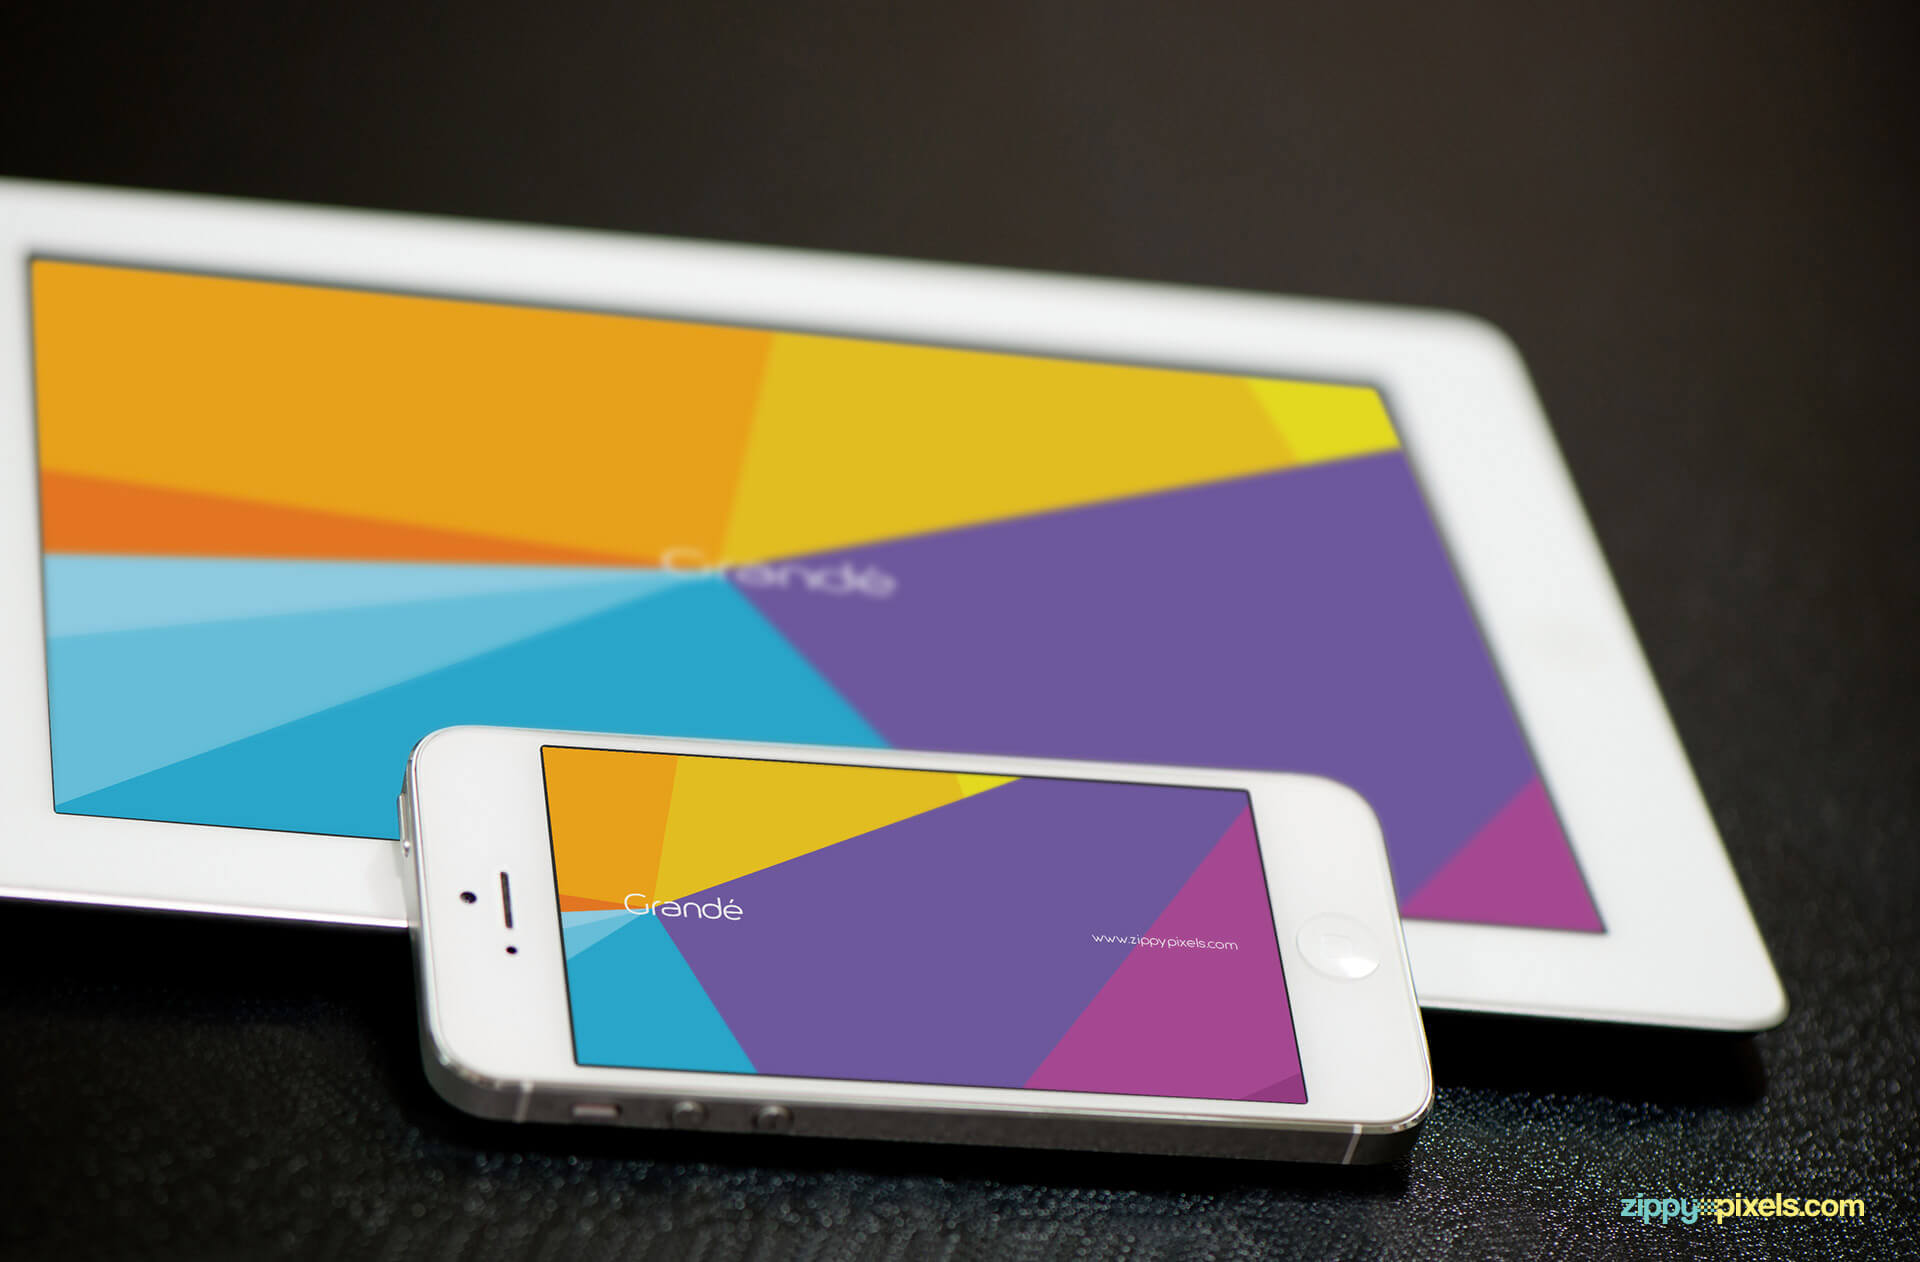 iPhone and iPad Mockup for app and branding presentations